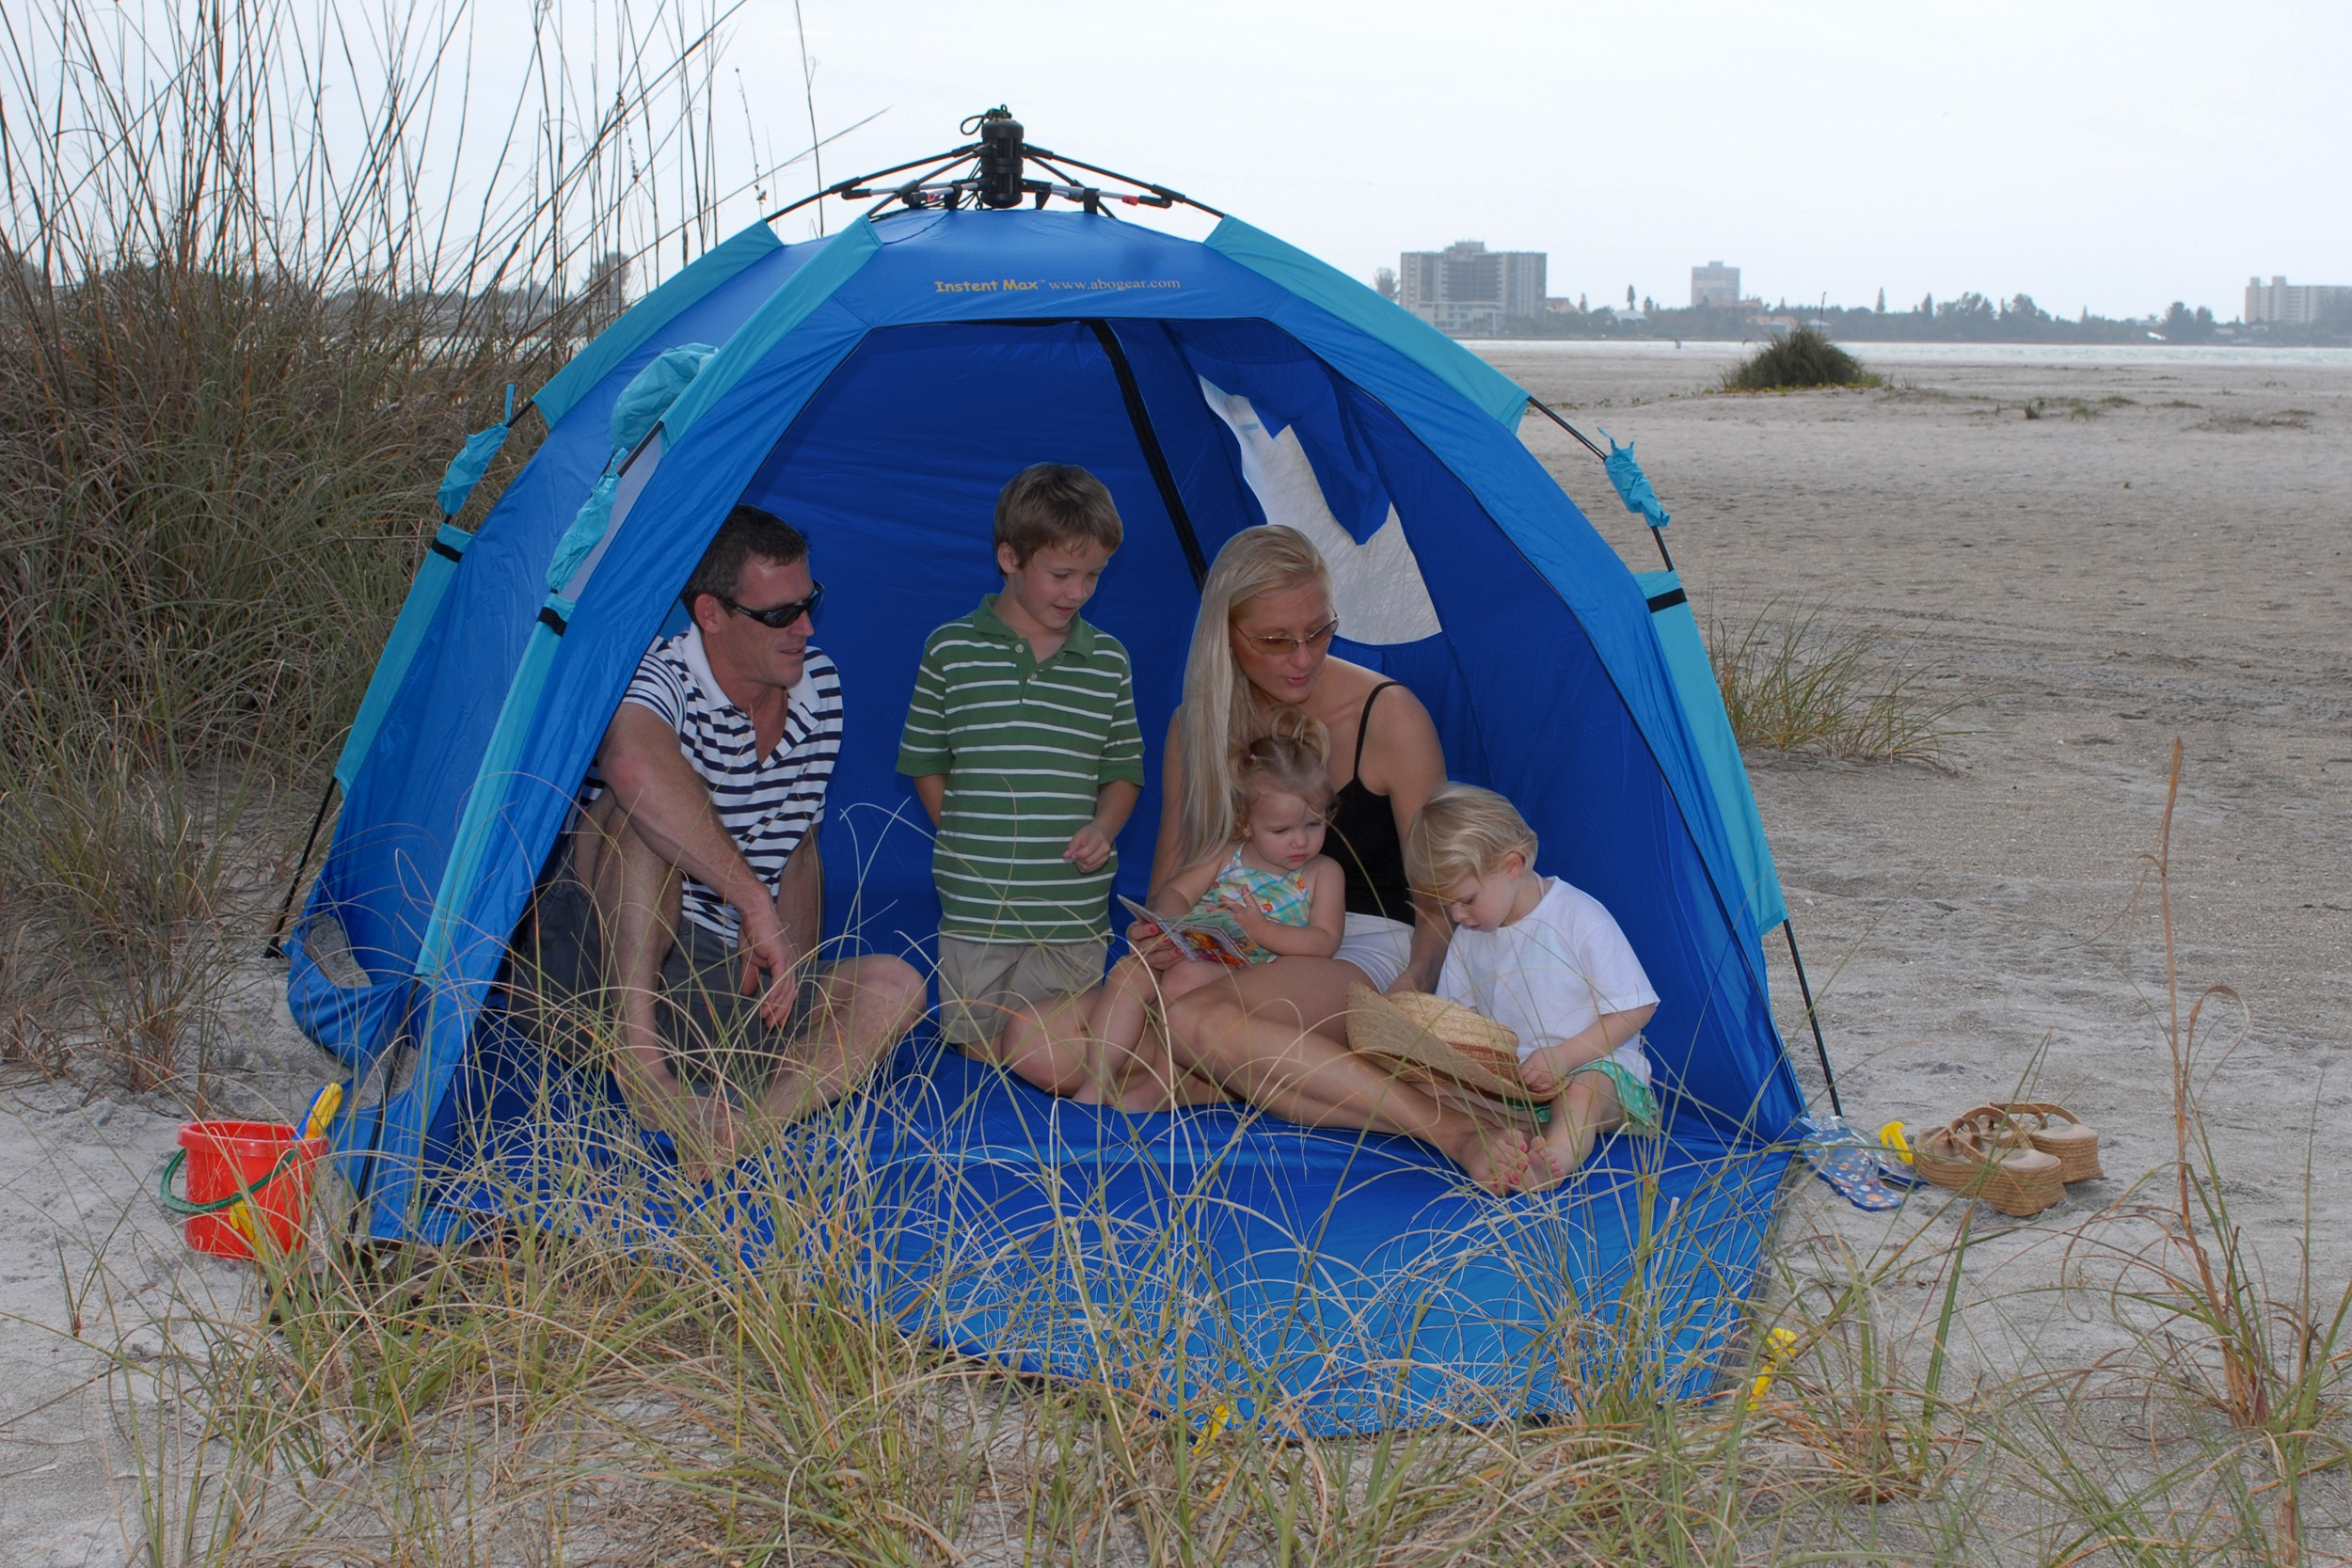 ABO Gear Instent Max Beach Tent u2013 Beach Tent UV Protective beach Tents and Clothing for the UK & ABO Gear Instent Max Beach Tent u2013 Beach Tent UV Protective beach ...